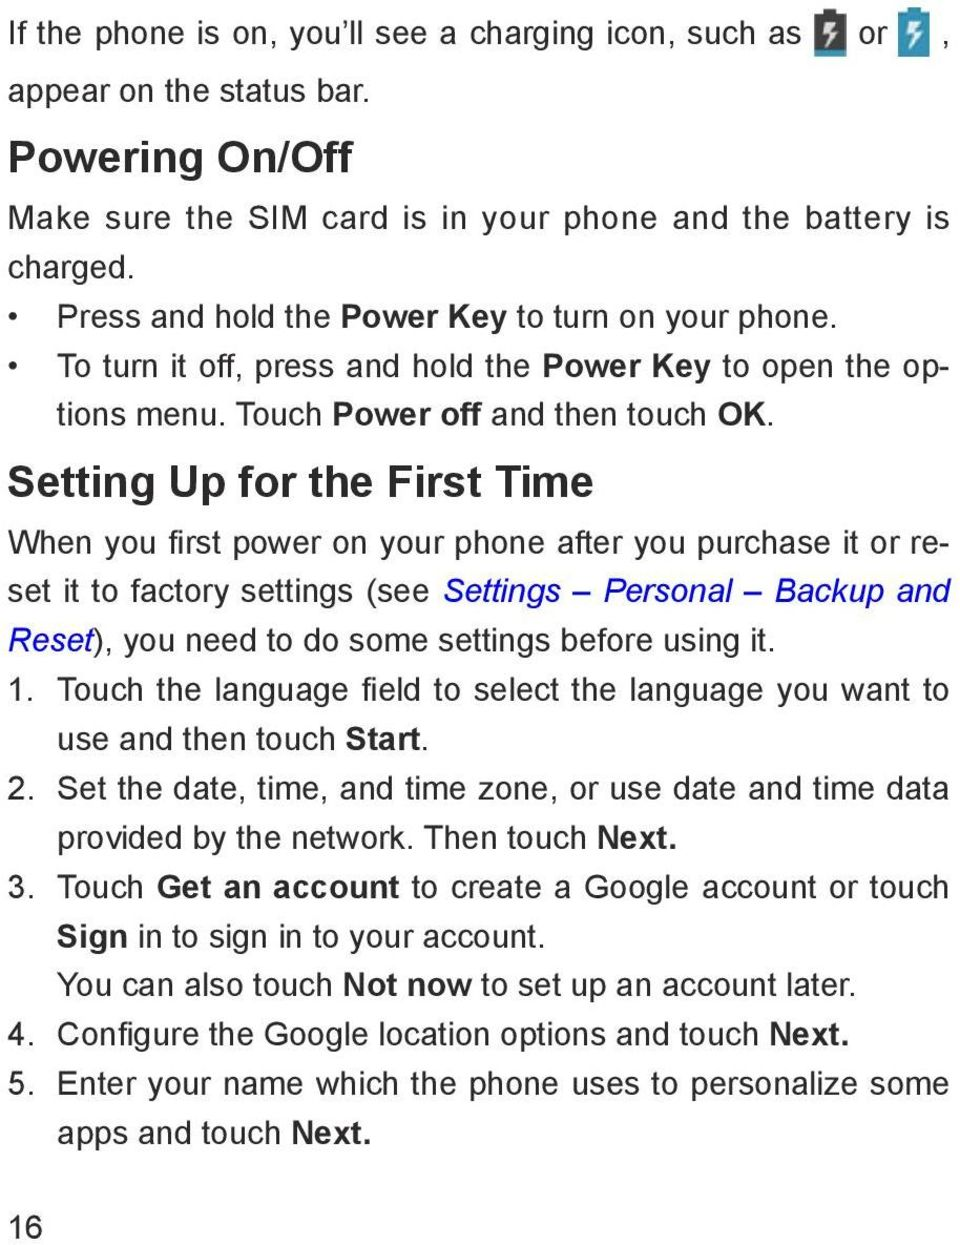 Setting Up for the First Time When you first power on your phone after you purchase it or reset it to factory settings (see Settings Personal Backup and Reset), you need to do some settings before